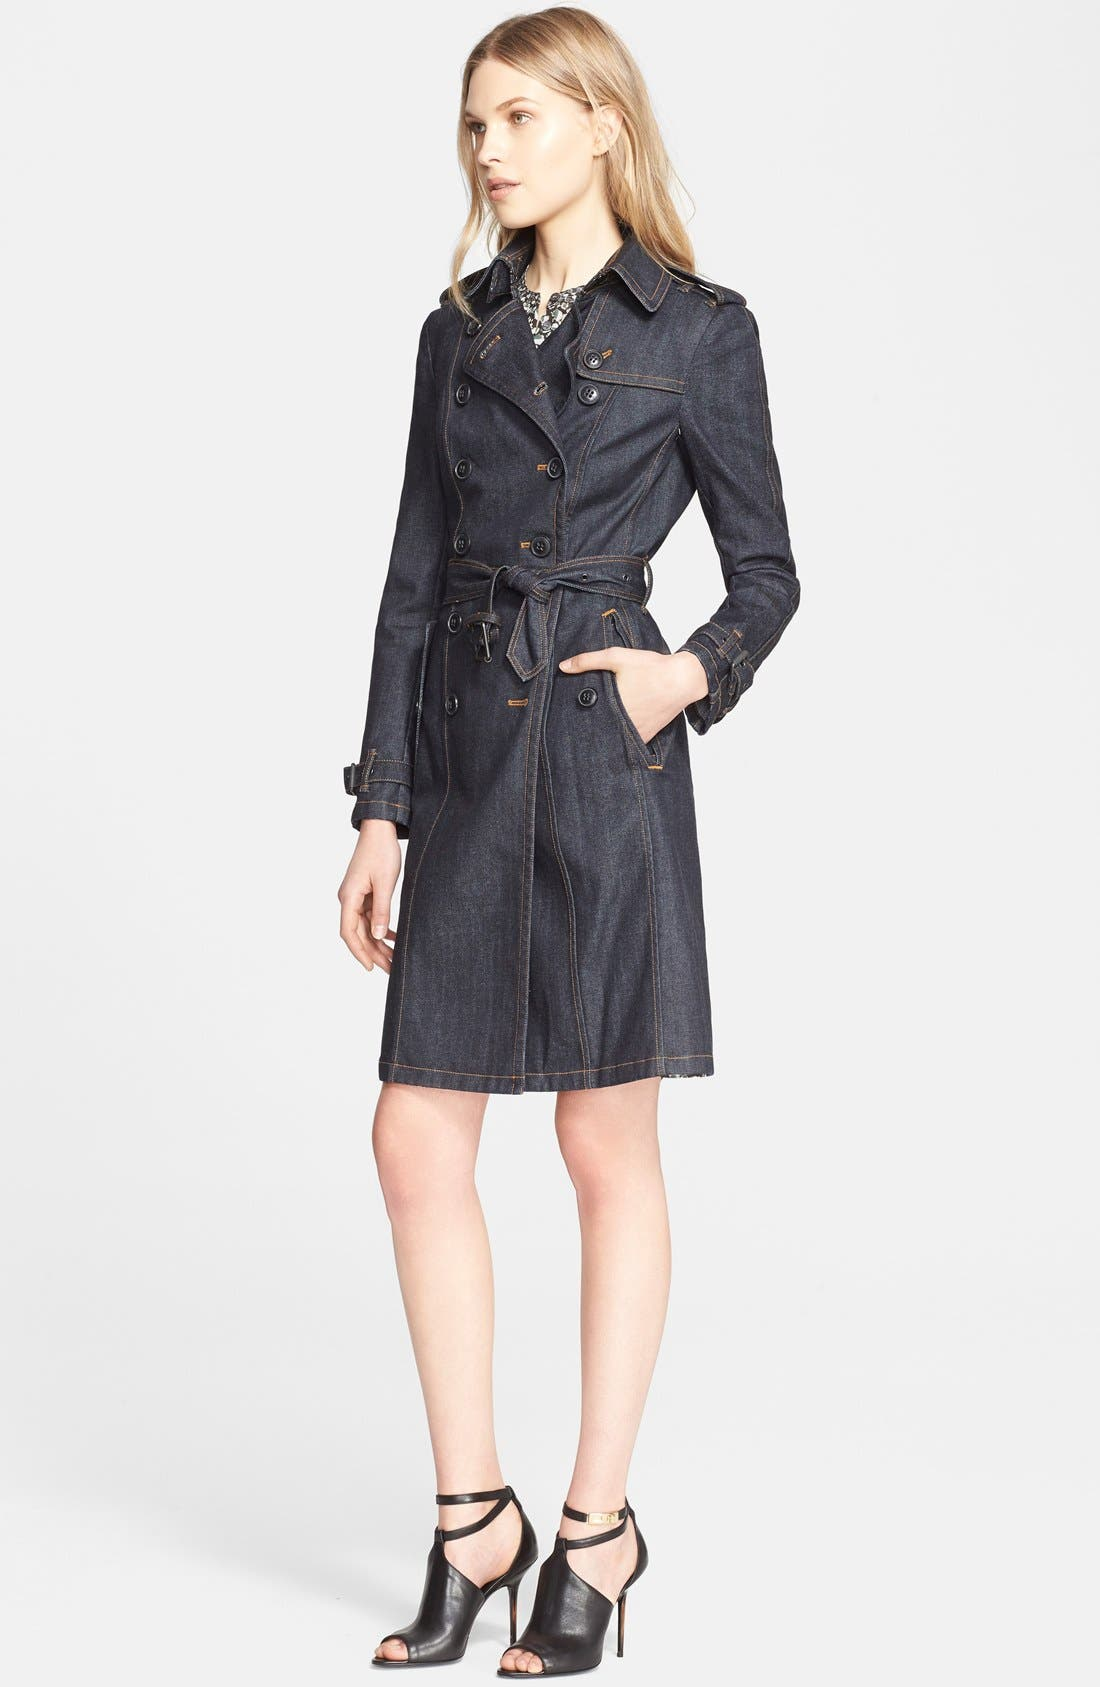 Women's Denim Trench Coat Hoodie Outerwear Hooded Jeans Coat Jacket. Steve Madden Women's Hooded Denim Trench Coat. by Steve Madden. $ $ 89 99 Prime. FREE Shipping on eligible orders. Some sizes/colors are Prime eligible. out of 5 stars 6. Product Description Classic styled updated in denim long hooded trench coat.